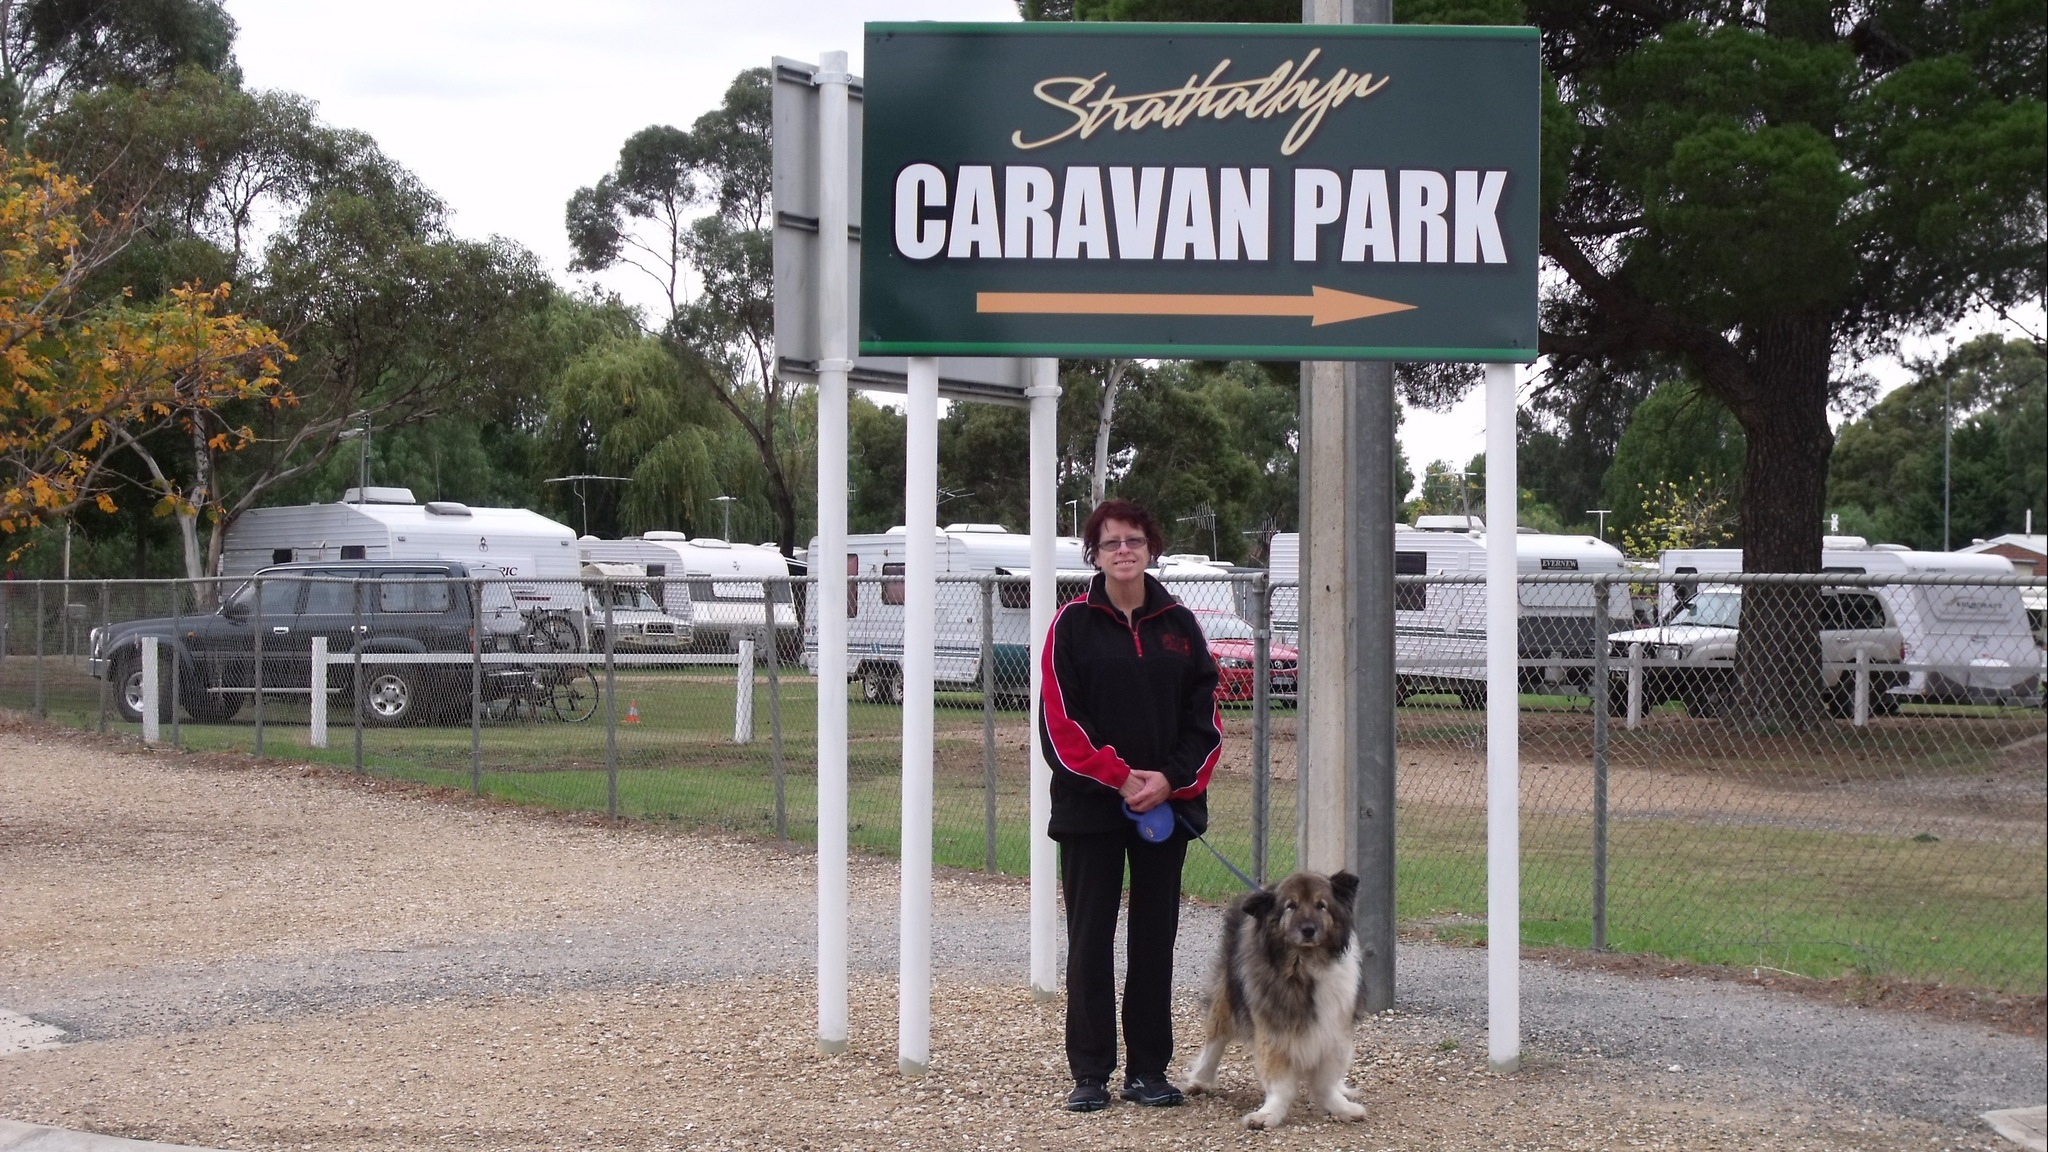 Strathalbyn Caravan Park - Accommodation Broken Hill